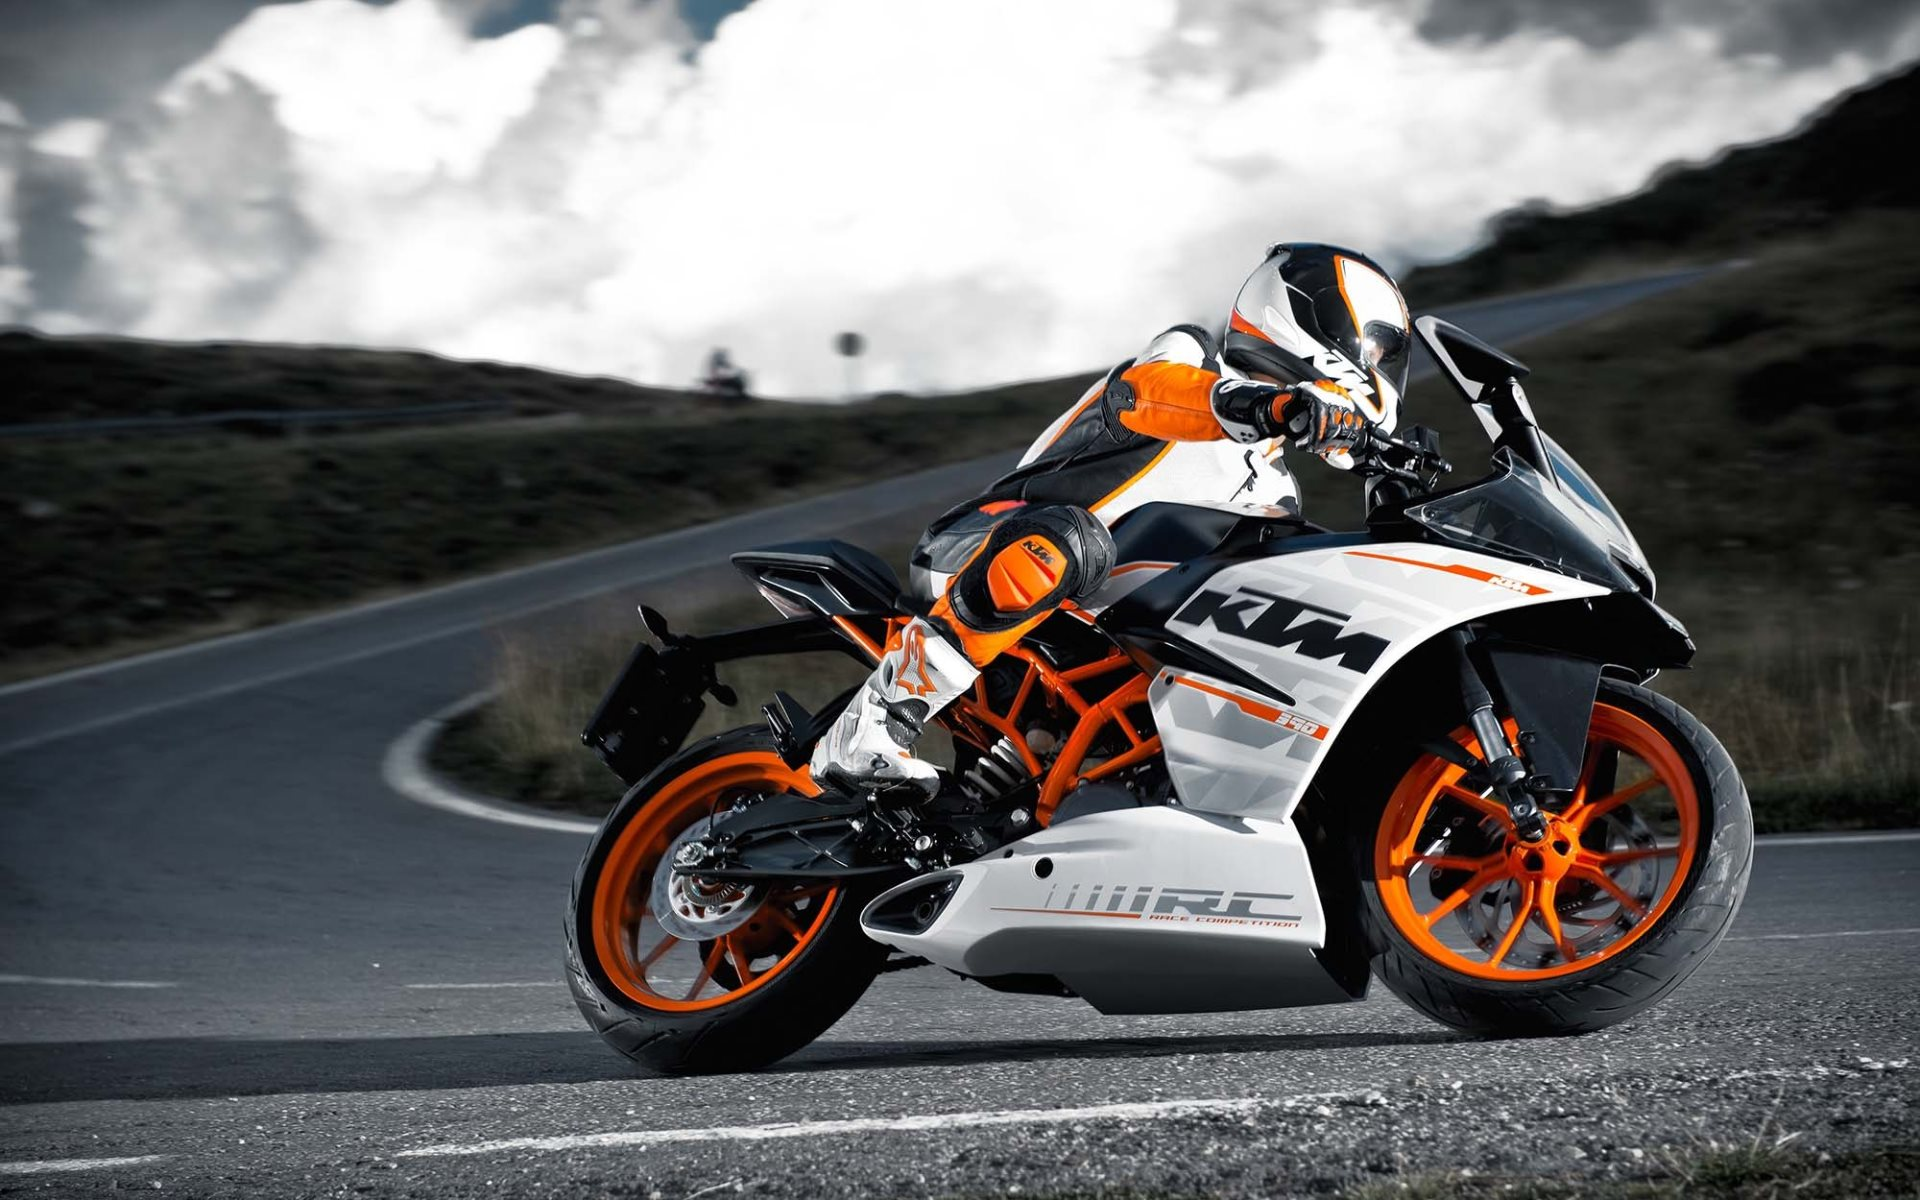 Ktm To Become Privately Owned Buys Public Shares